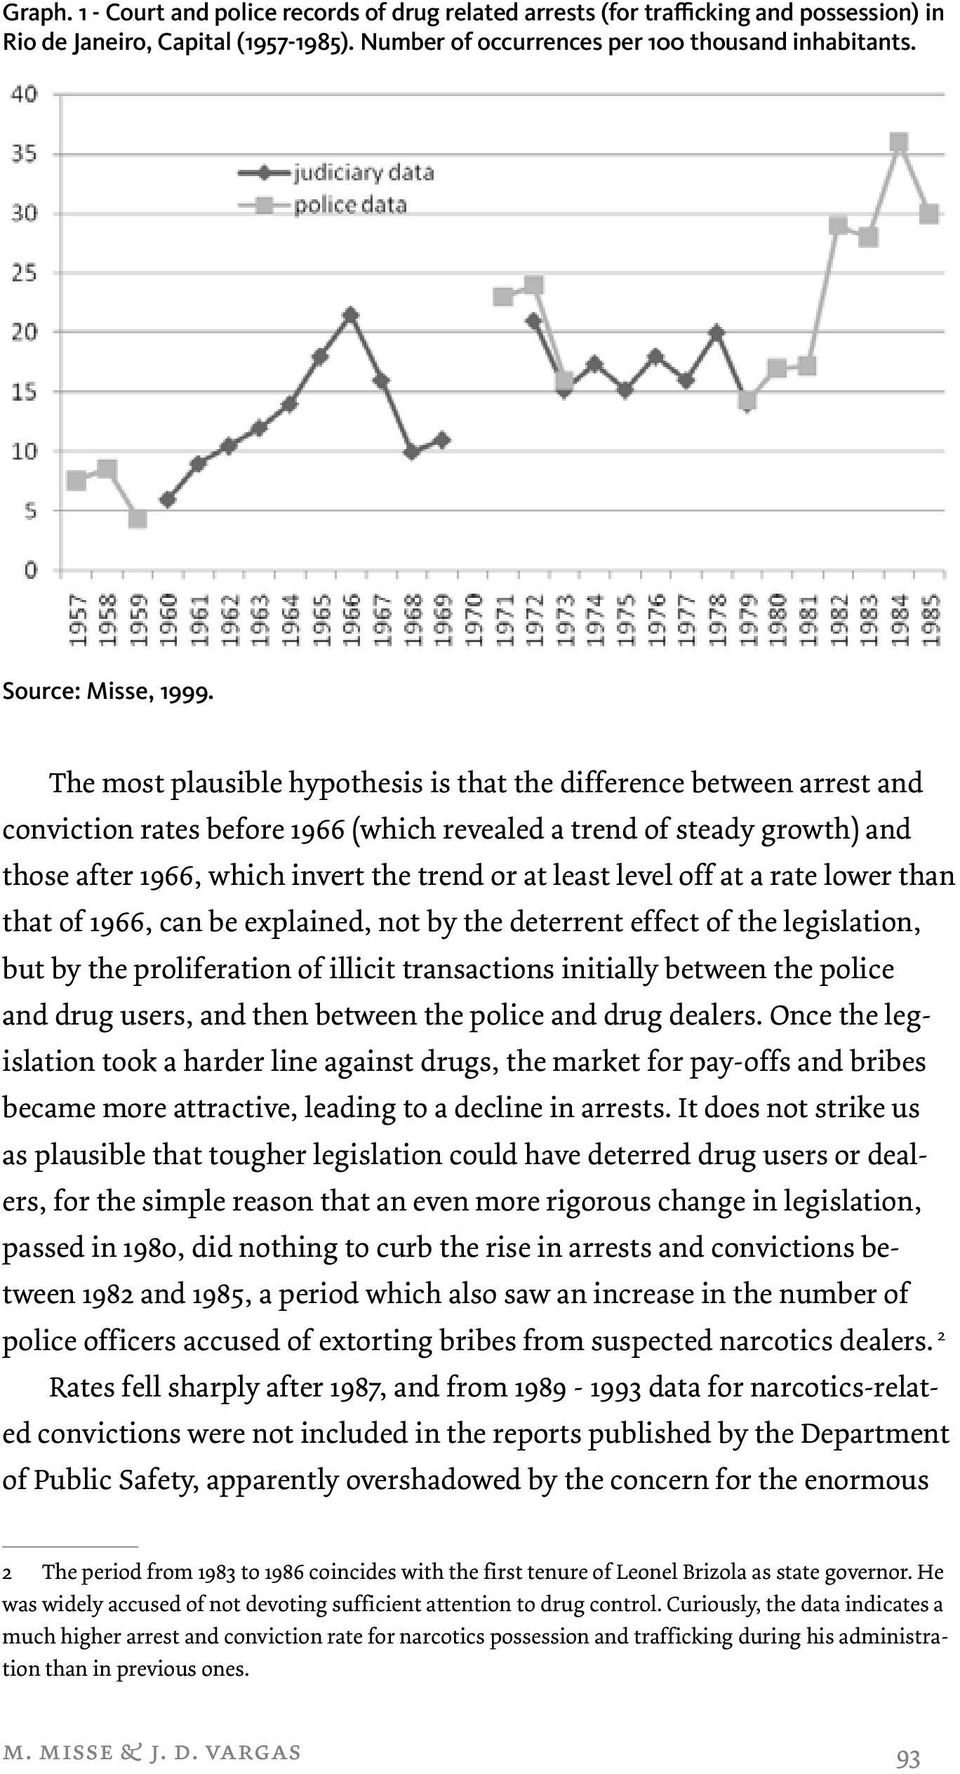 The most plausible hypothesis is that the difference between arrest and conviction rates before 1966 (which revealed a trend of steady growth) and those after 1966, which invert the trend or at least